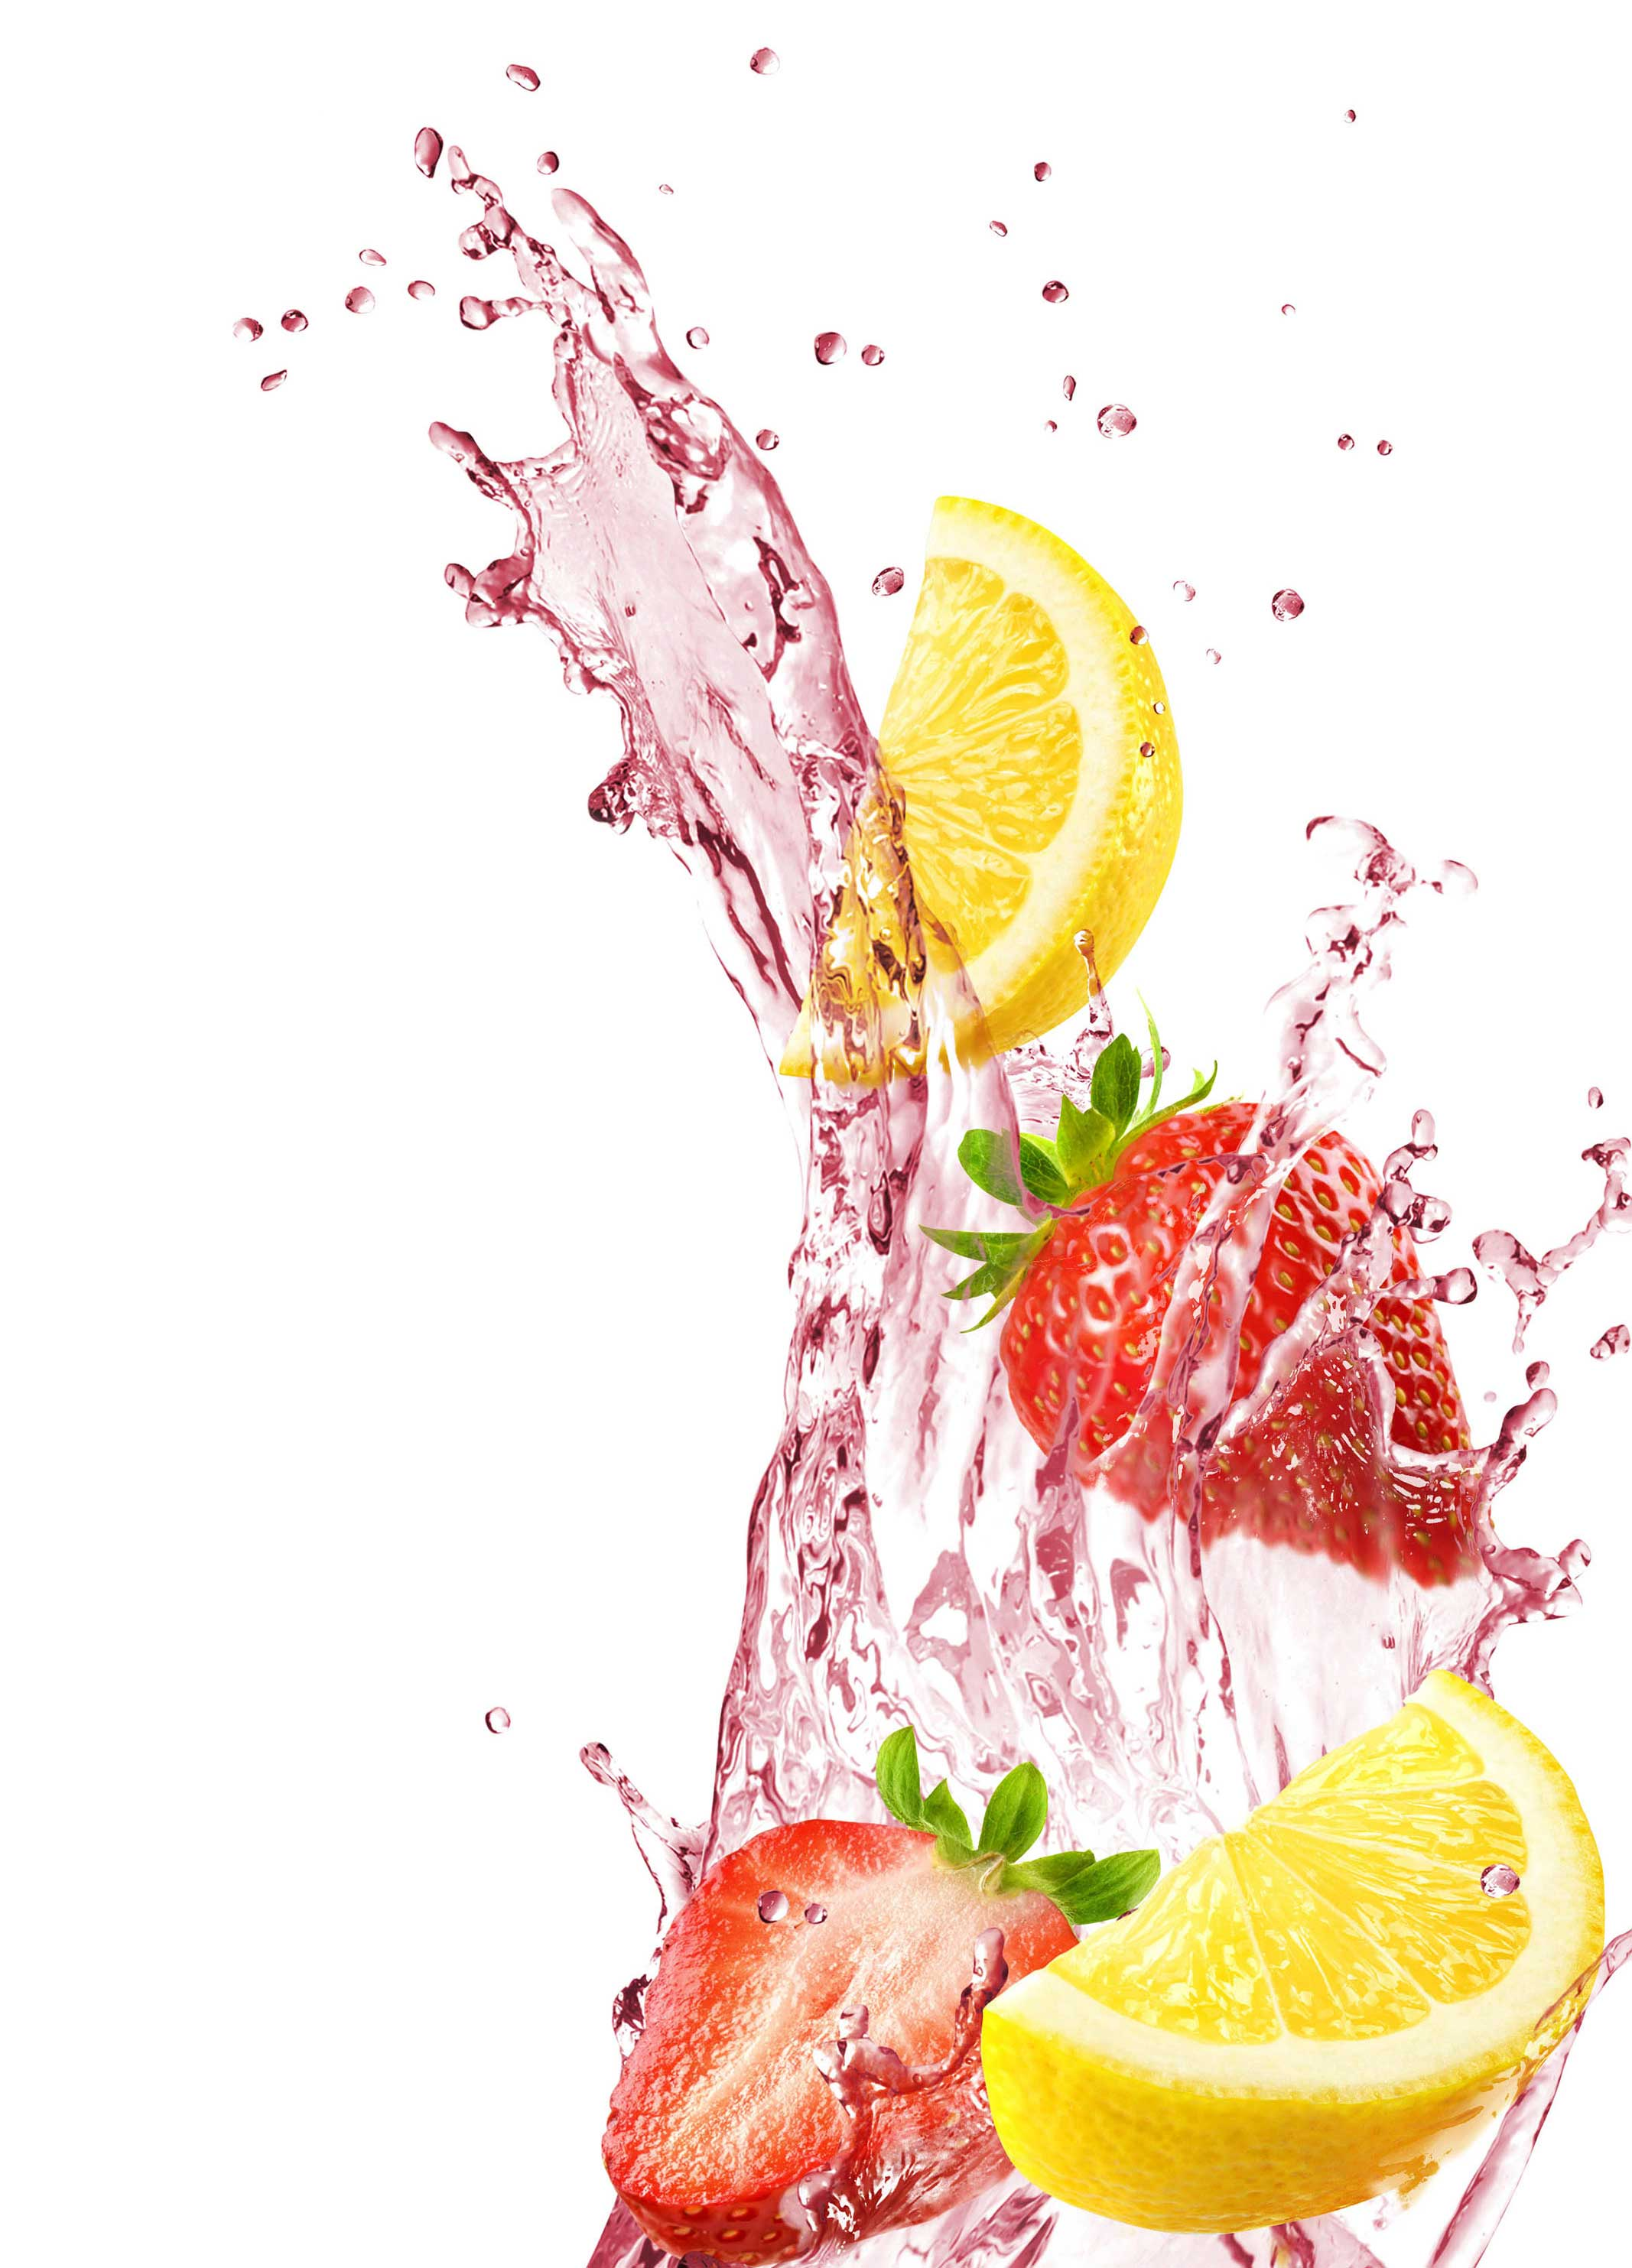 mike wepplo photoreal photography strawberry lemon splash